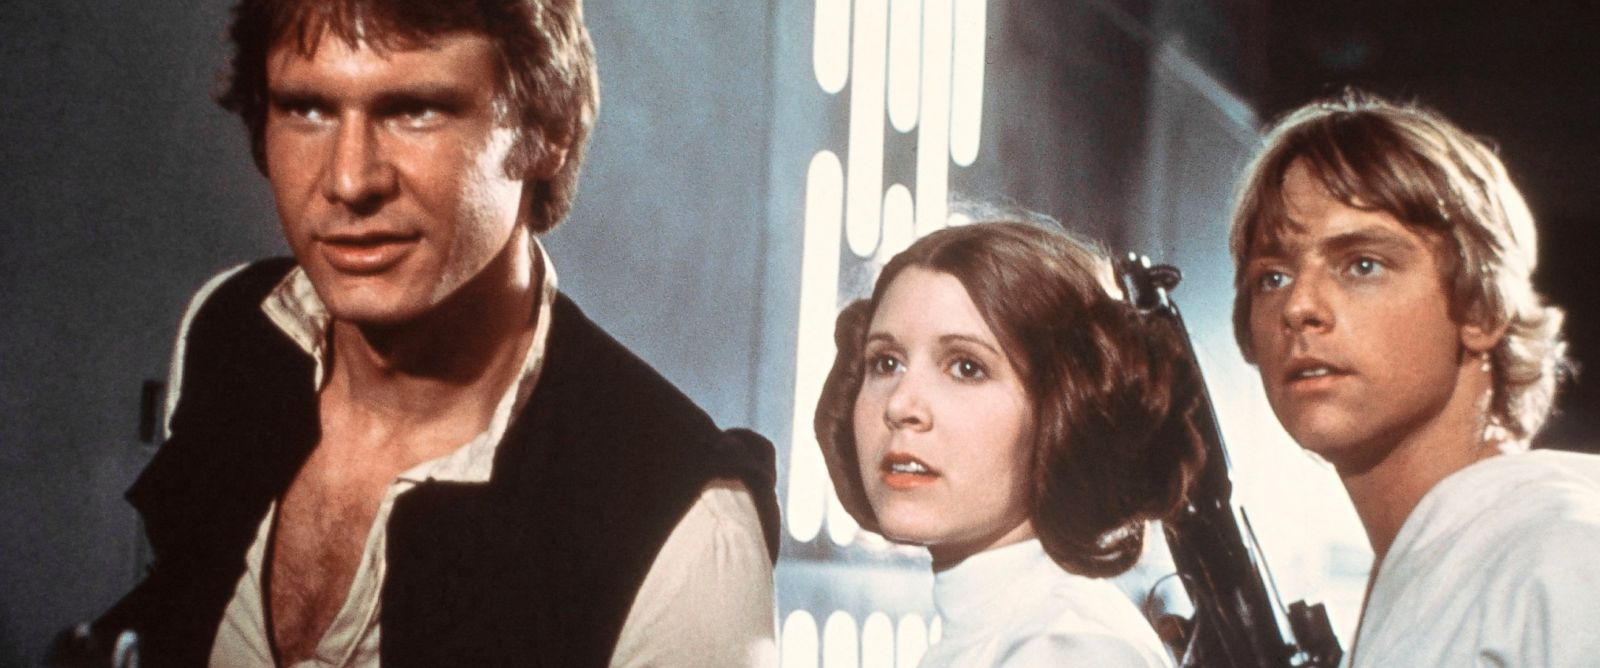 "PHOTO: Harrison Ford as Han Solo, Carrie Fisher as Princess Leia Organa and Mark Hamill as Luke Skywalker in a scene from the ""Star Wars"" movie released by 20th Century-Fox in 1977."